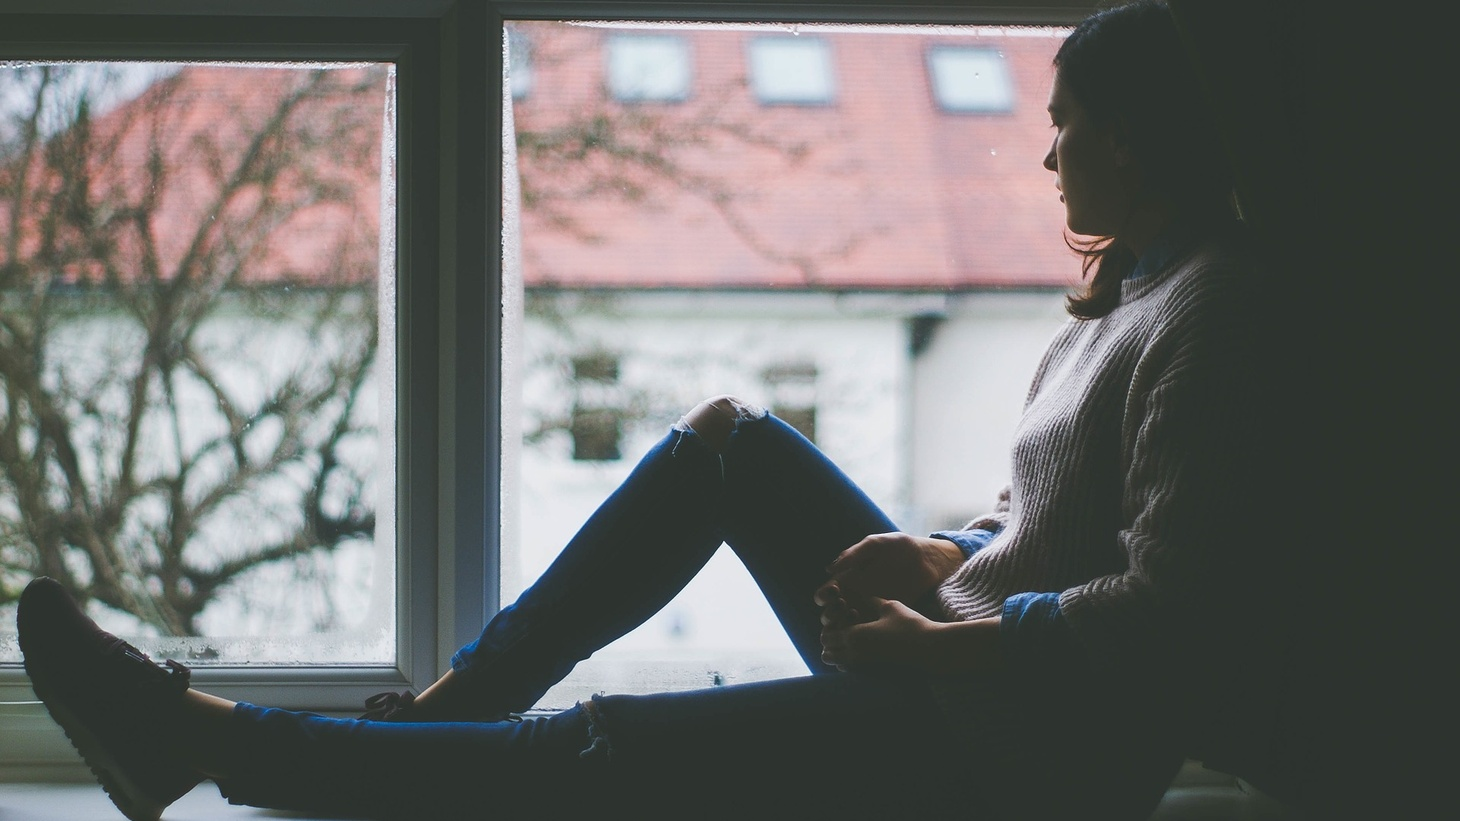 A young woman sits alone by a window, peering outside.